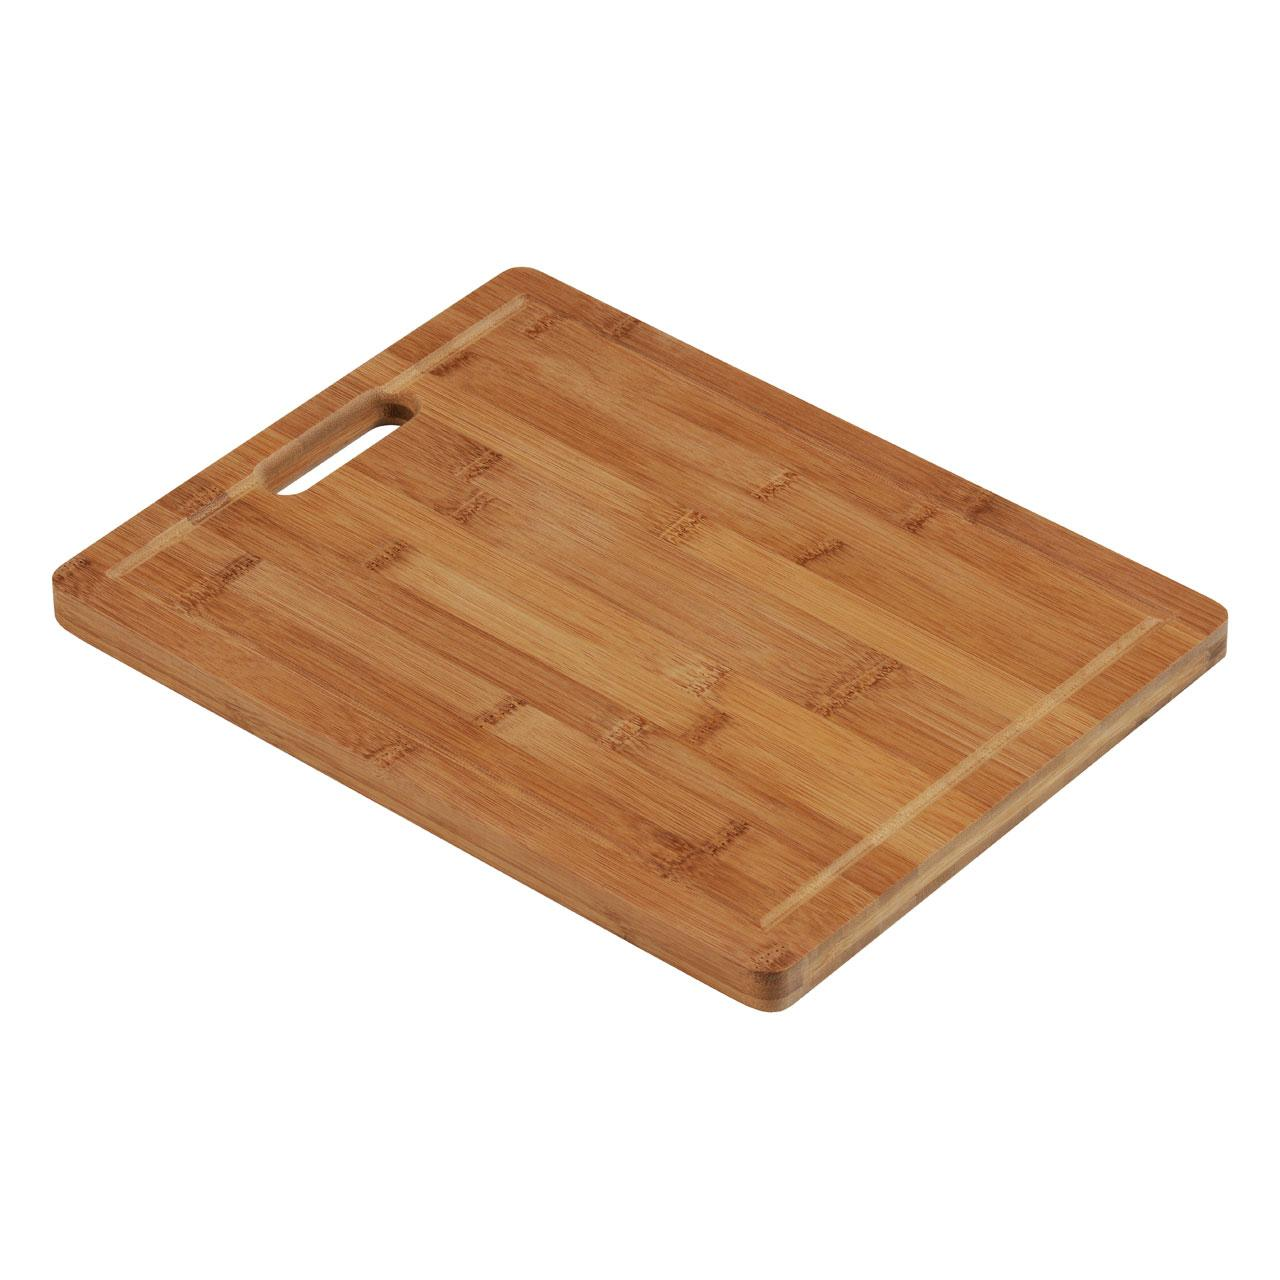 The item for sale is premier set of 5 coloured flexible chopping - Chopping Board